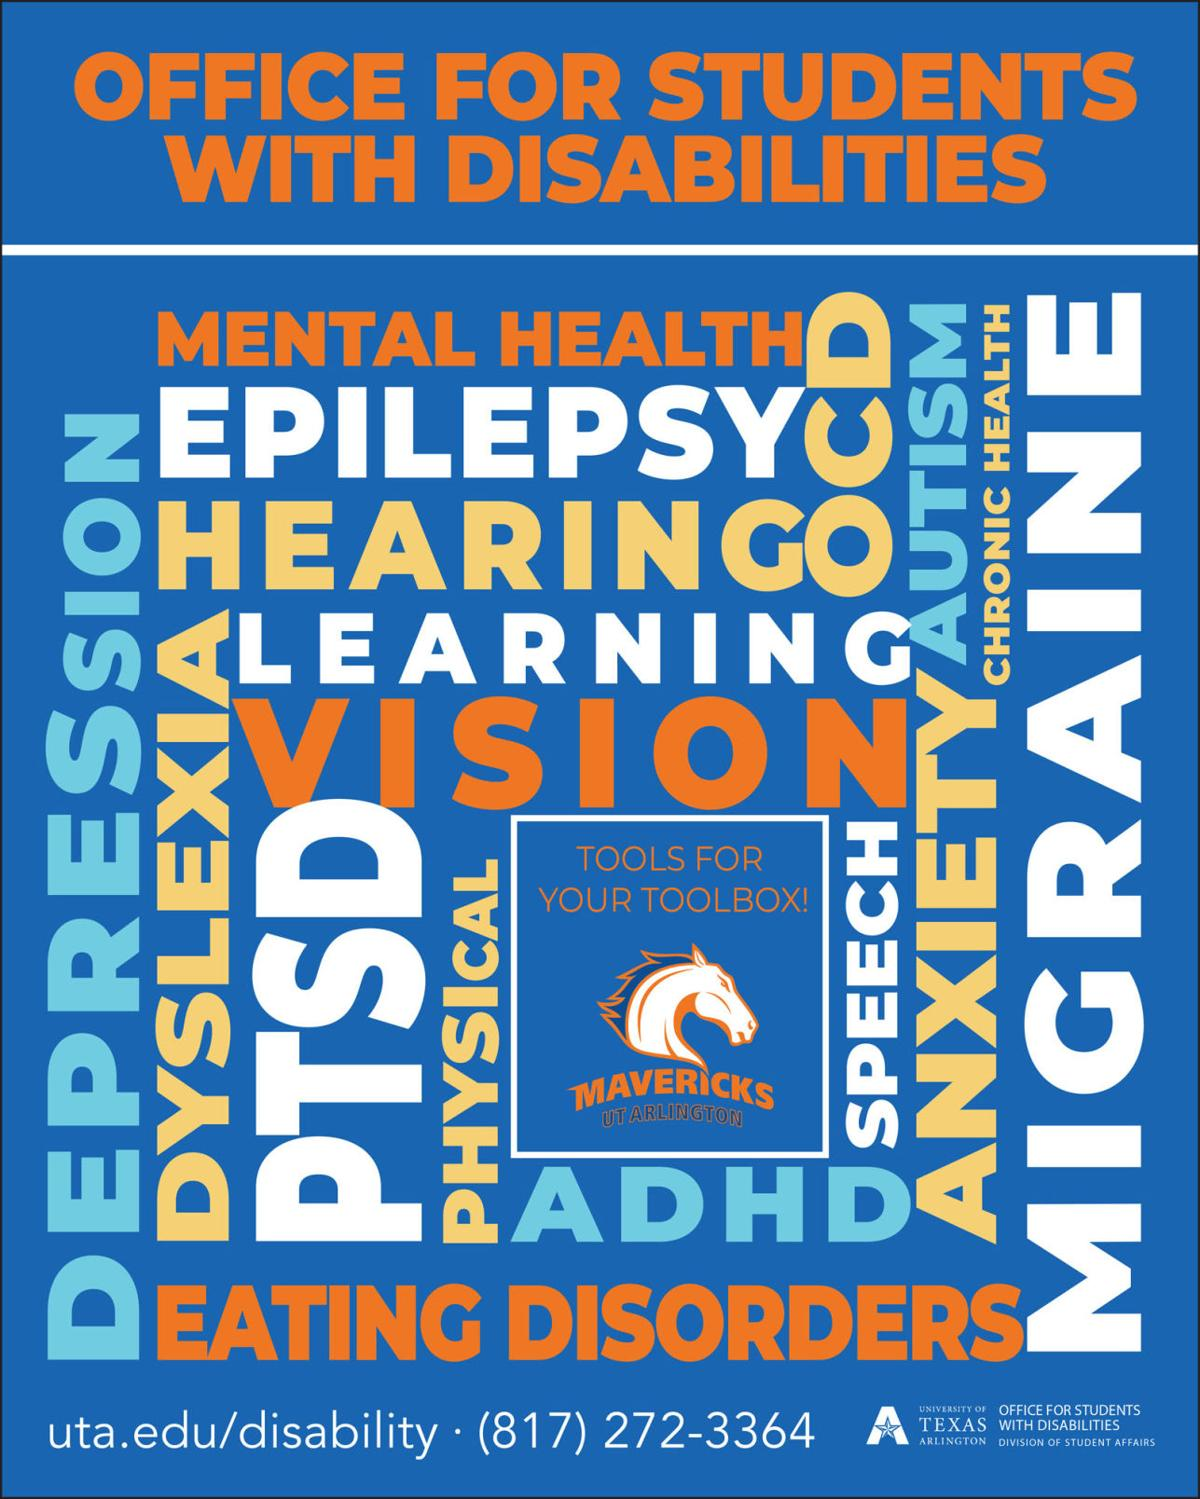 UTA Office for Students with Disabilities